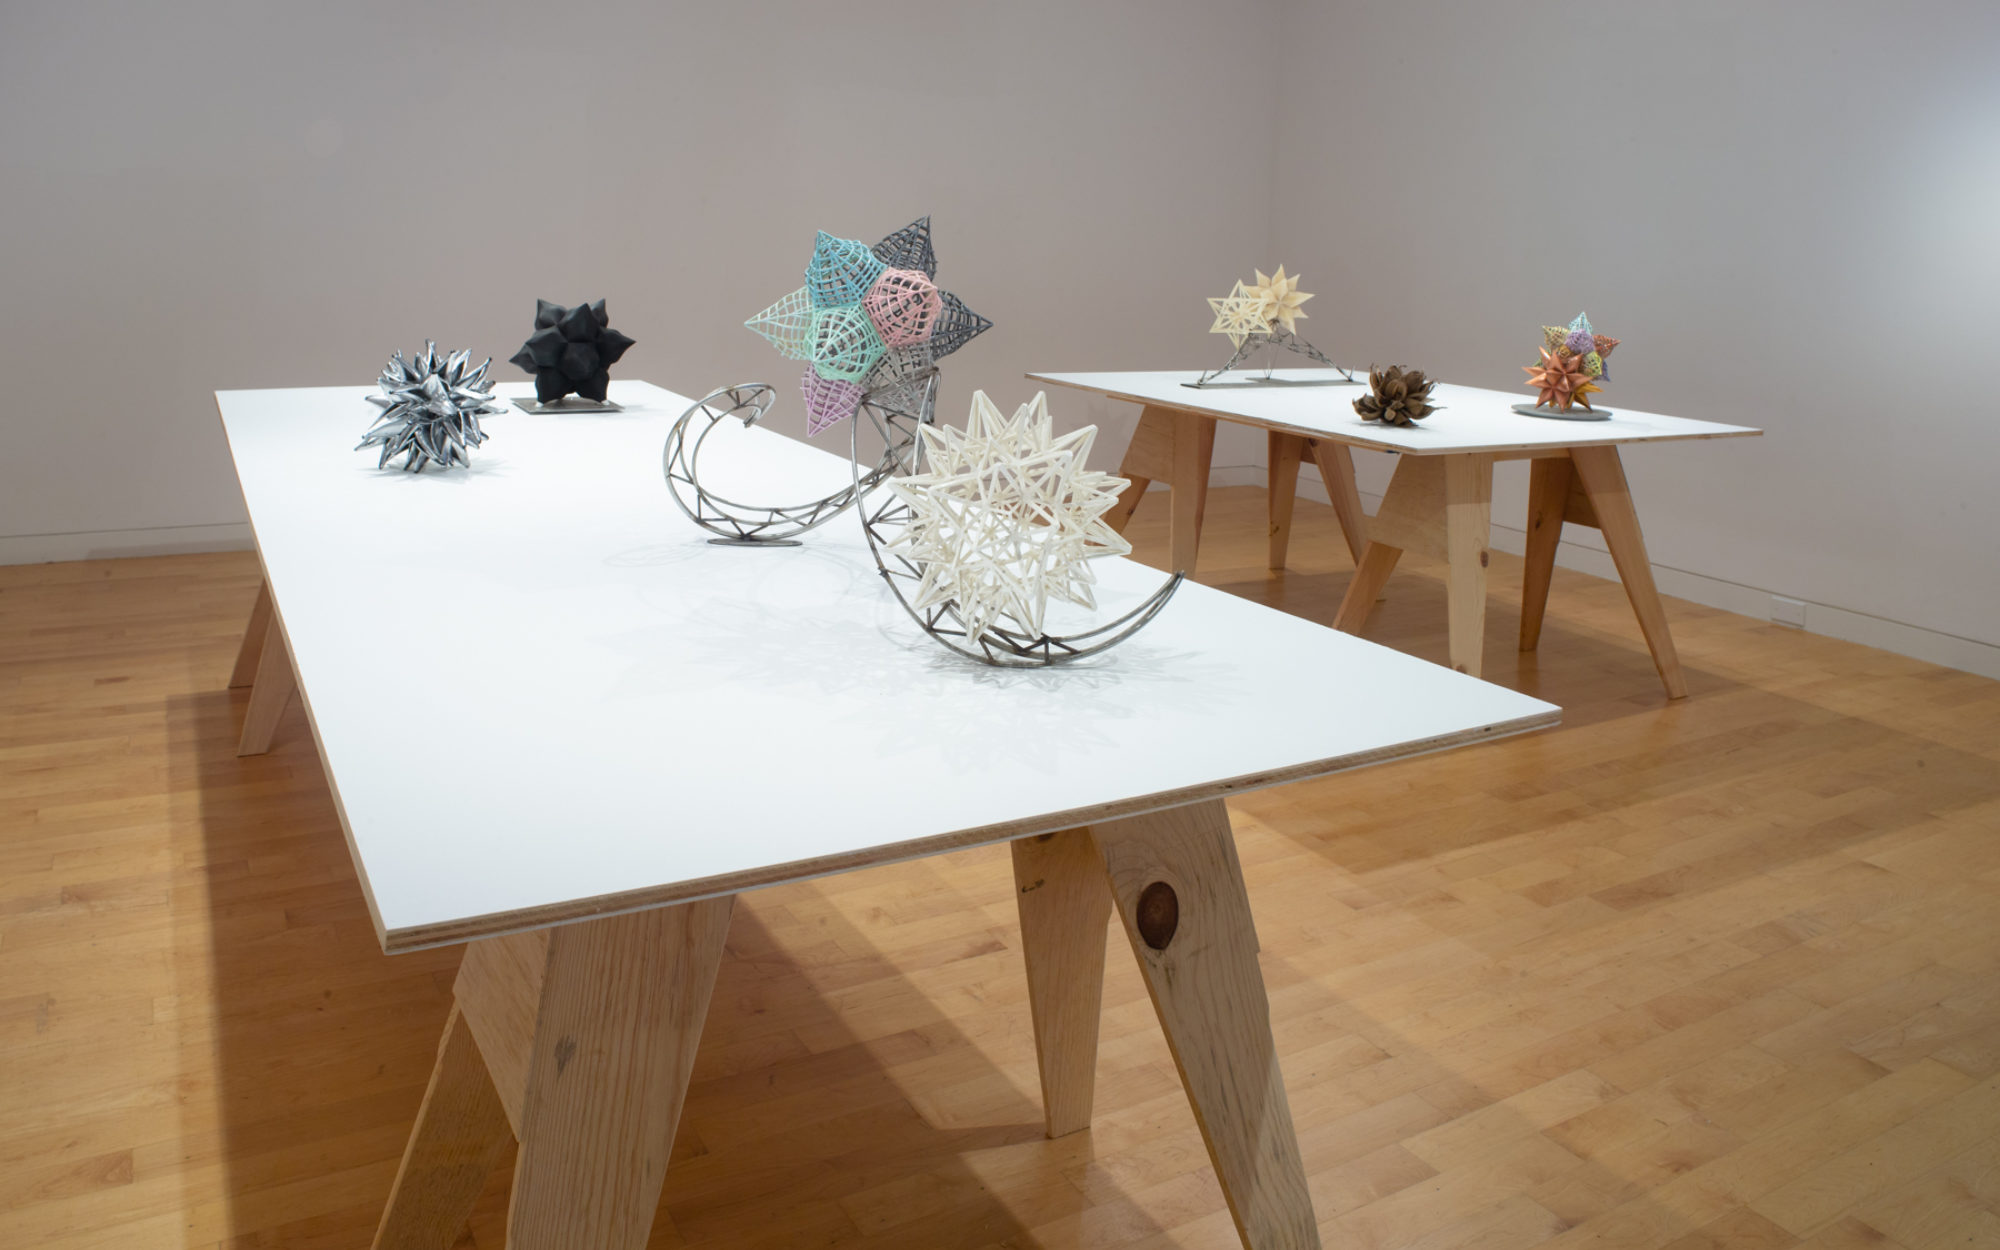 Small scale maquettes for larger sculptures by Frank Stella on tables with white surfaces.